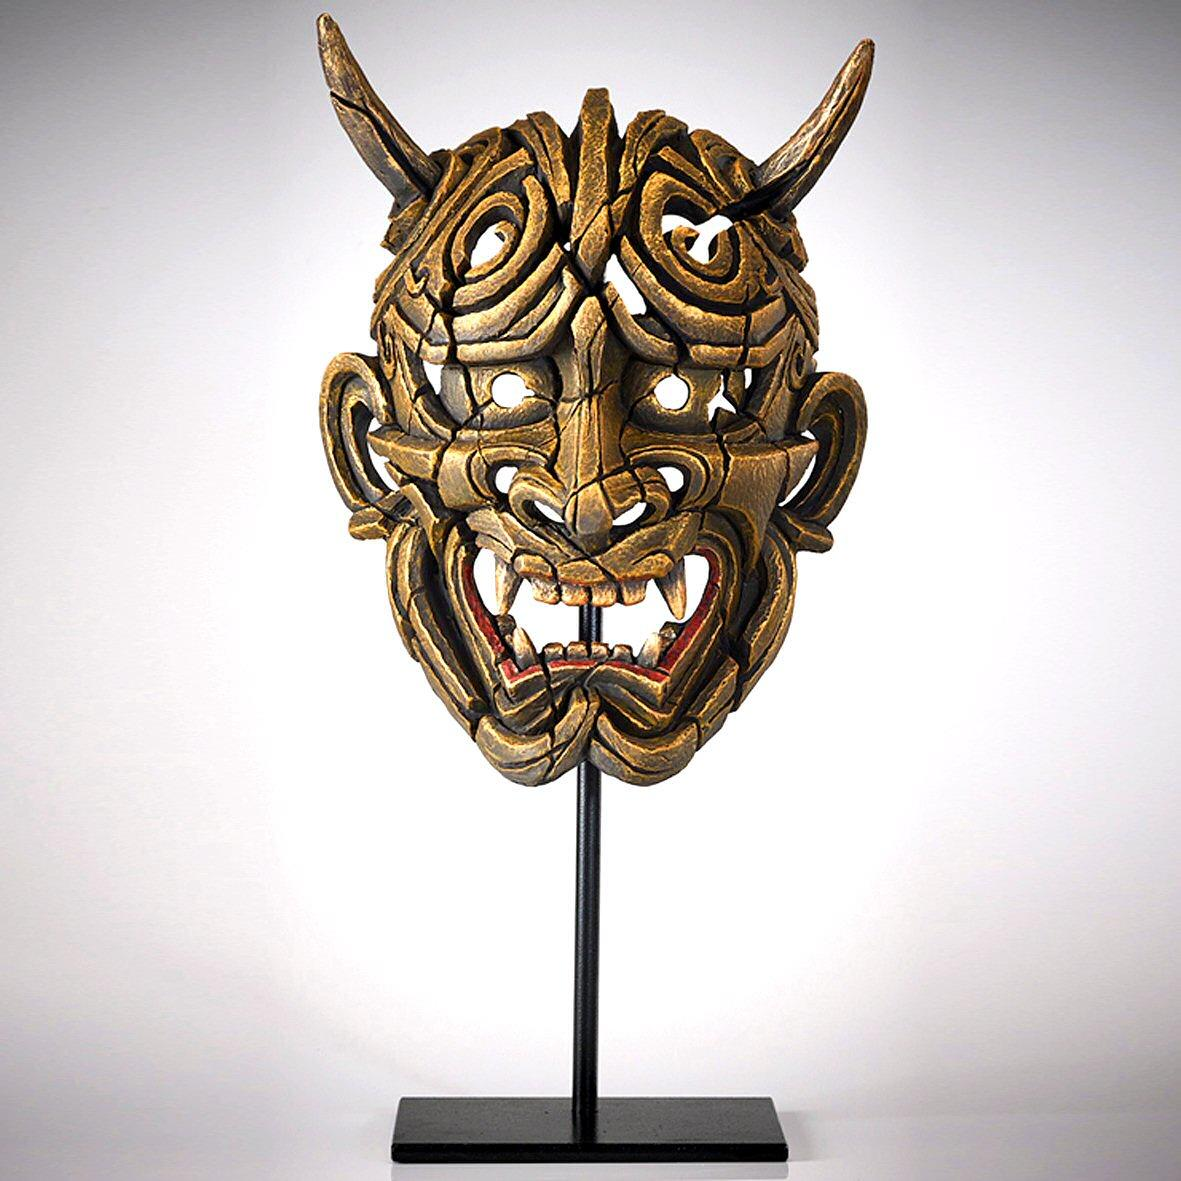 Japanese Hannya Mask - Netsuke Gold EDM01G EDGE by Matt Buckley